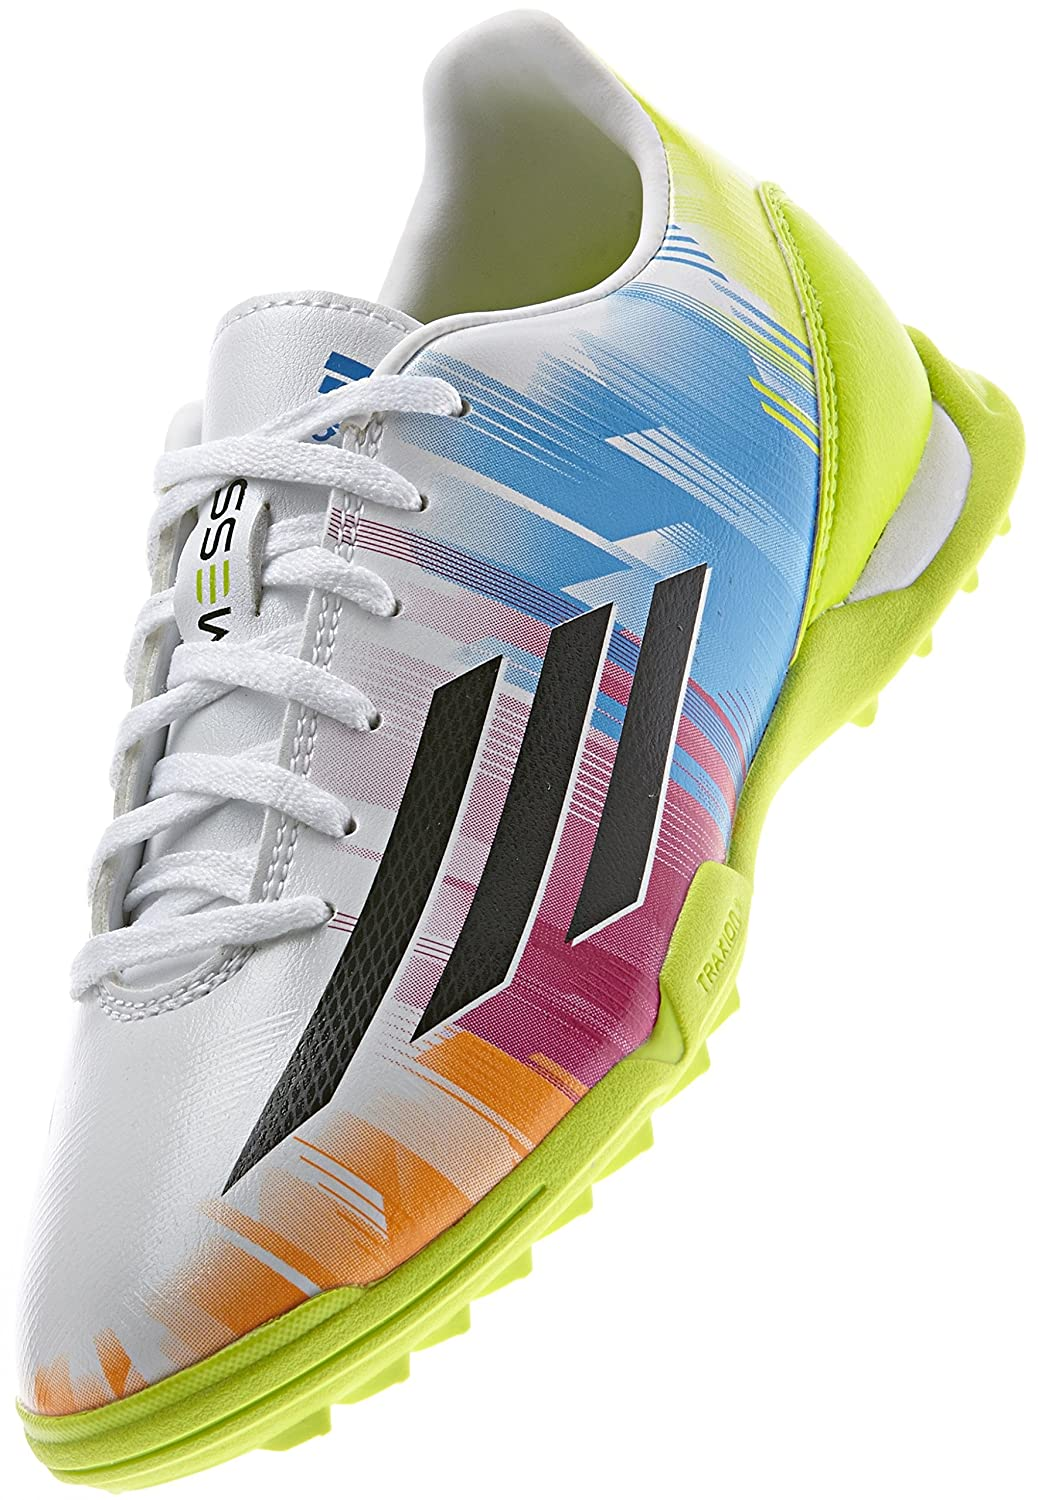 Adidas F10 Messi Indoor Soccer Shoes Adidas Messi F10 Turf Soccer